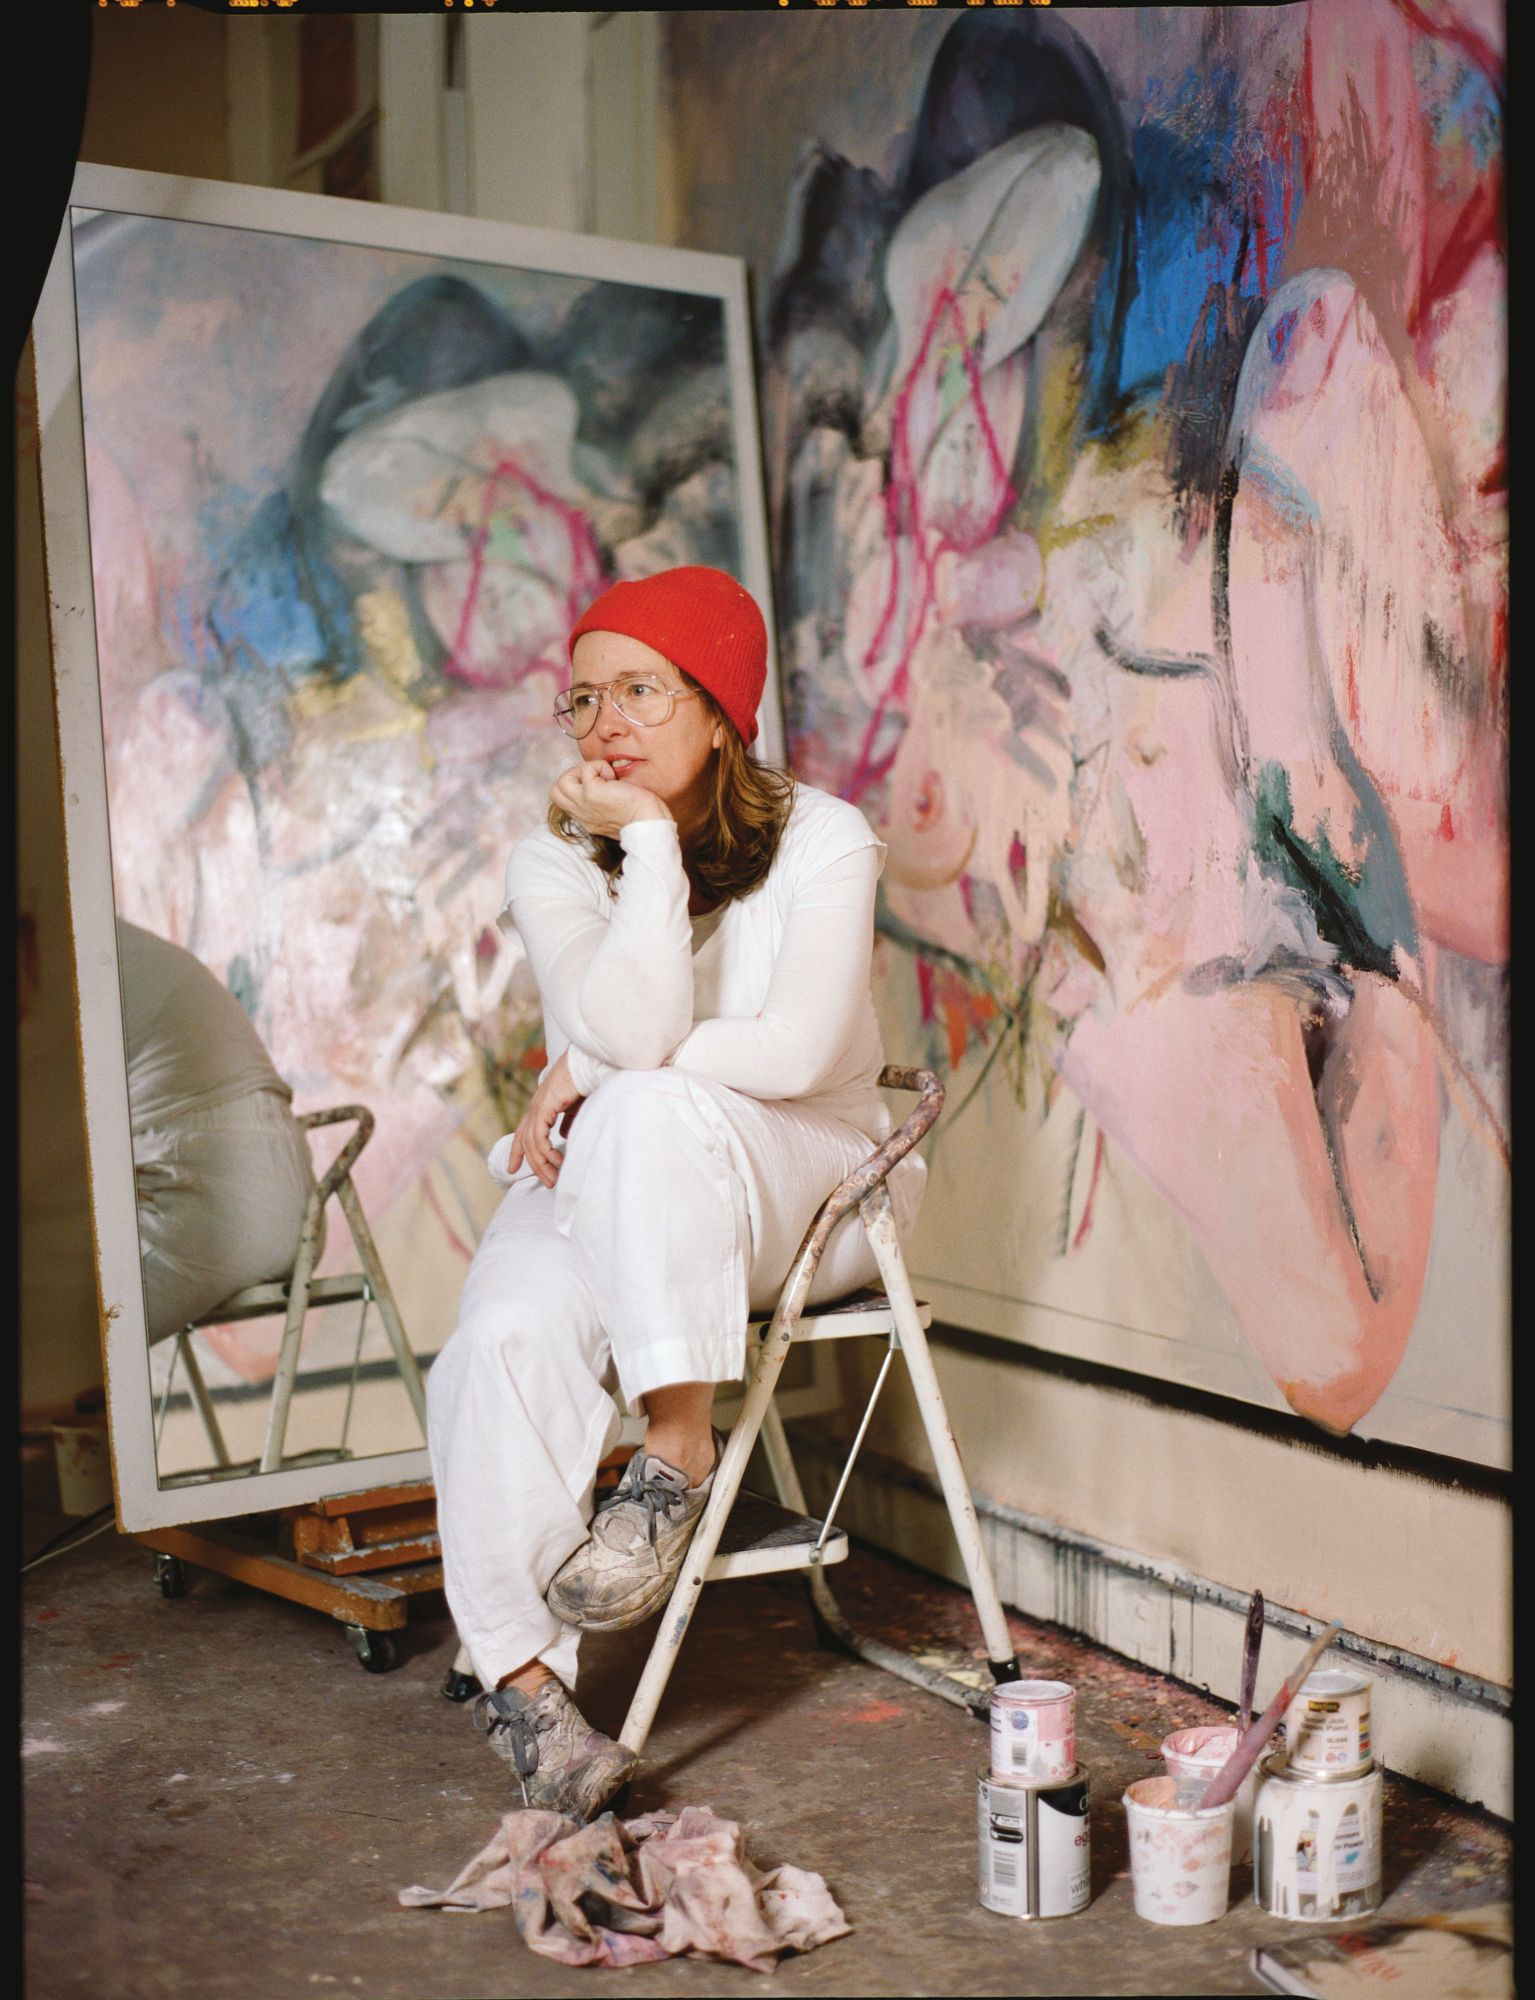 Artist Jenny Saville Takes Us Inside Her Studio And Reveals Insights Into Gender Equality